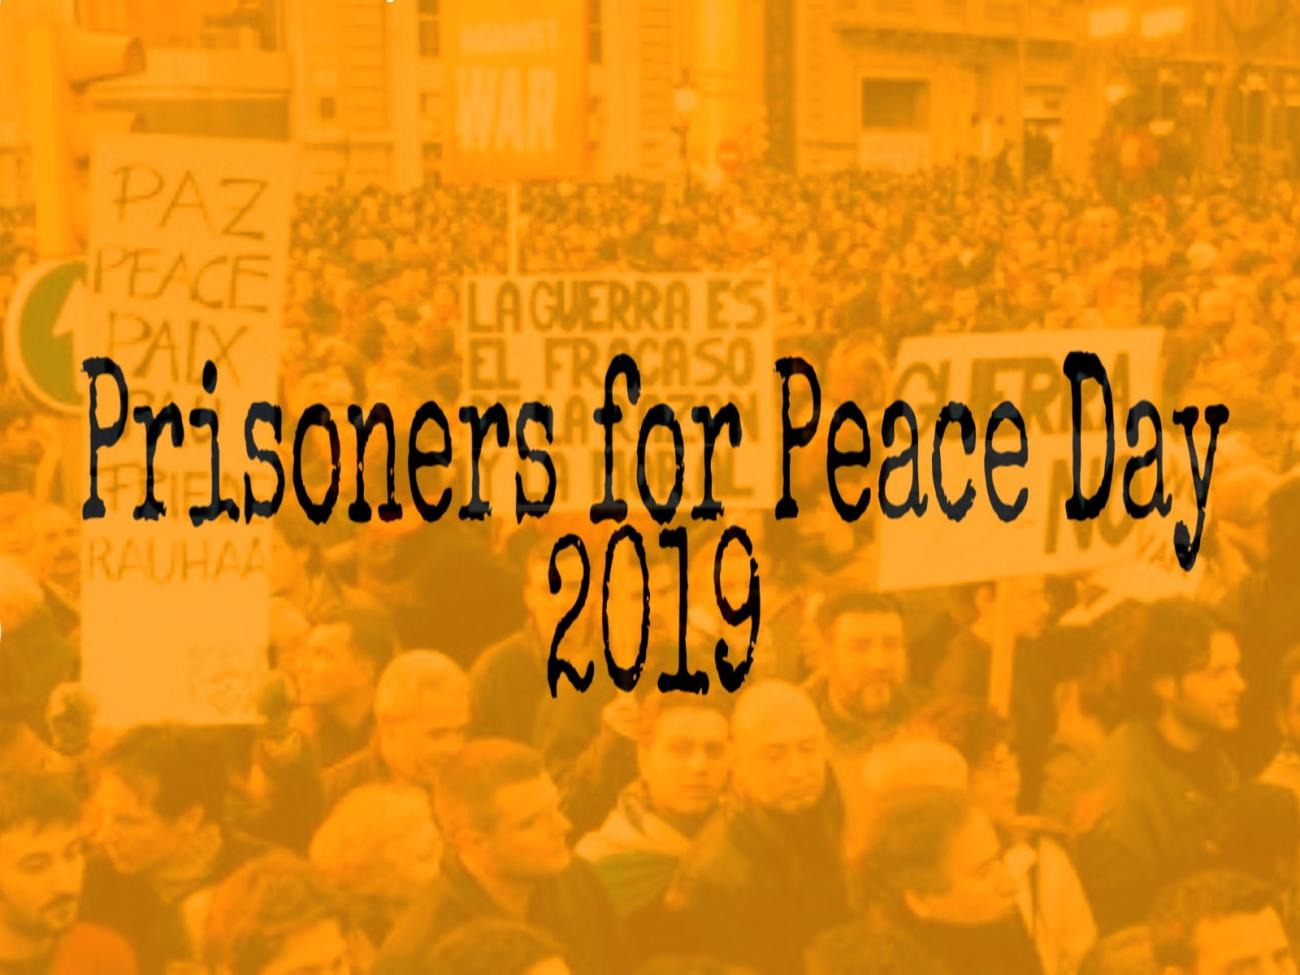 Prisoners for Peace Day 2019